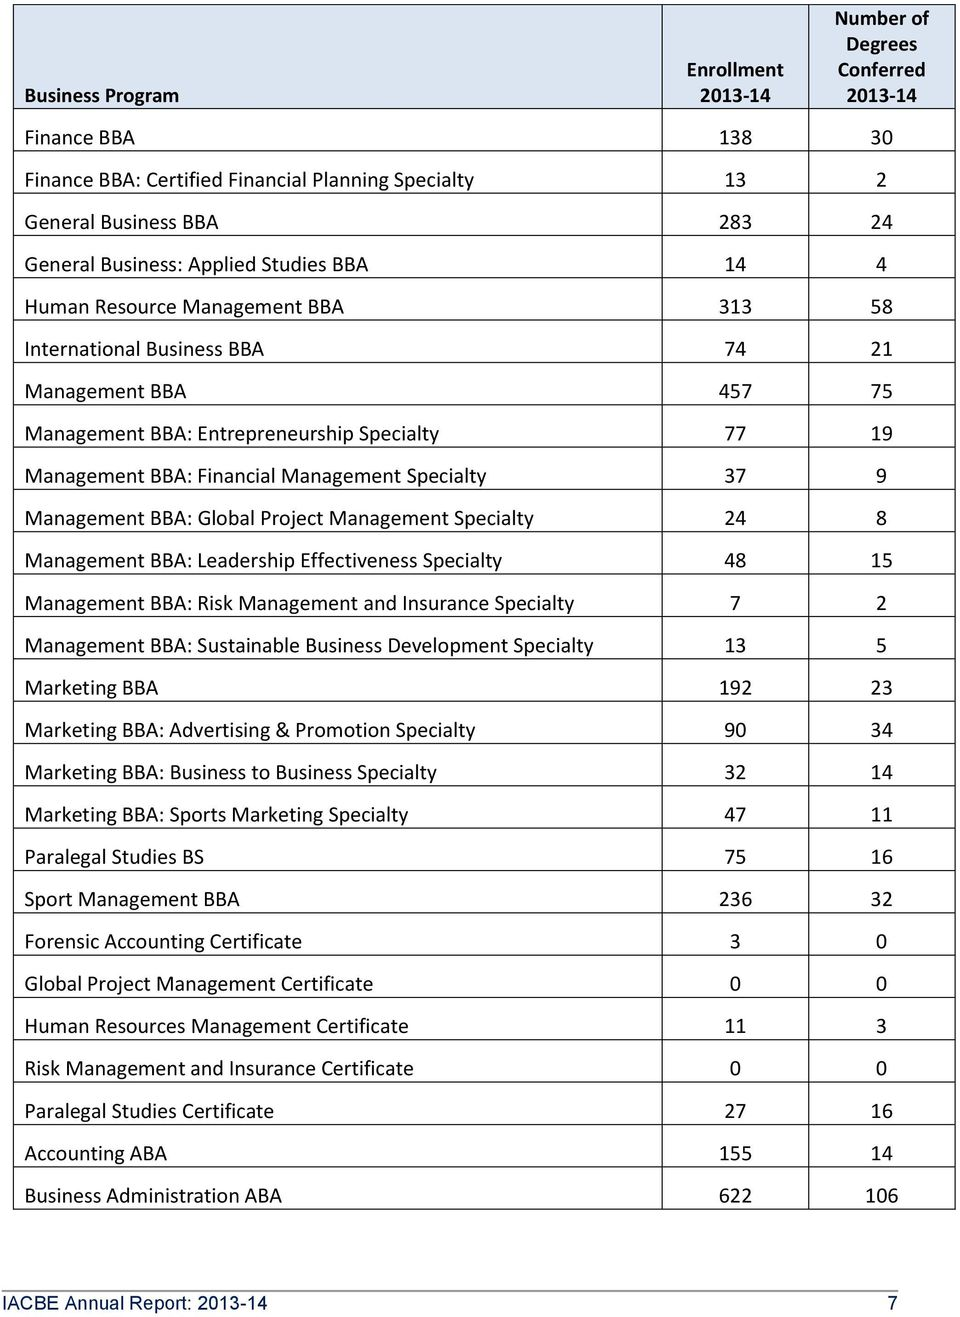 Management Specialty 37 9 Management BBA: Global Project Management Specialty 24 8 Management BBA: Leadership Effectiveness Specialty 48 15 Management BBA: Risk Management and Insurance Specialty 7 2